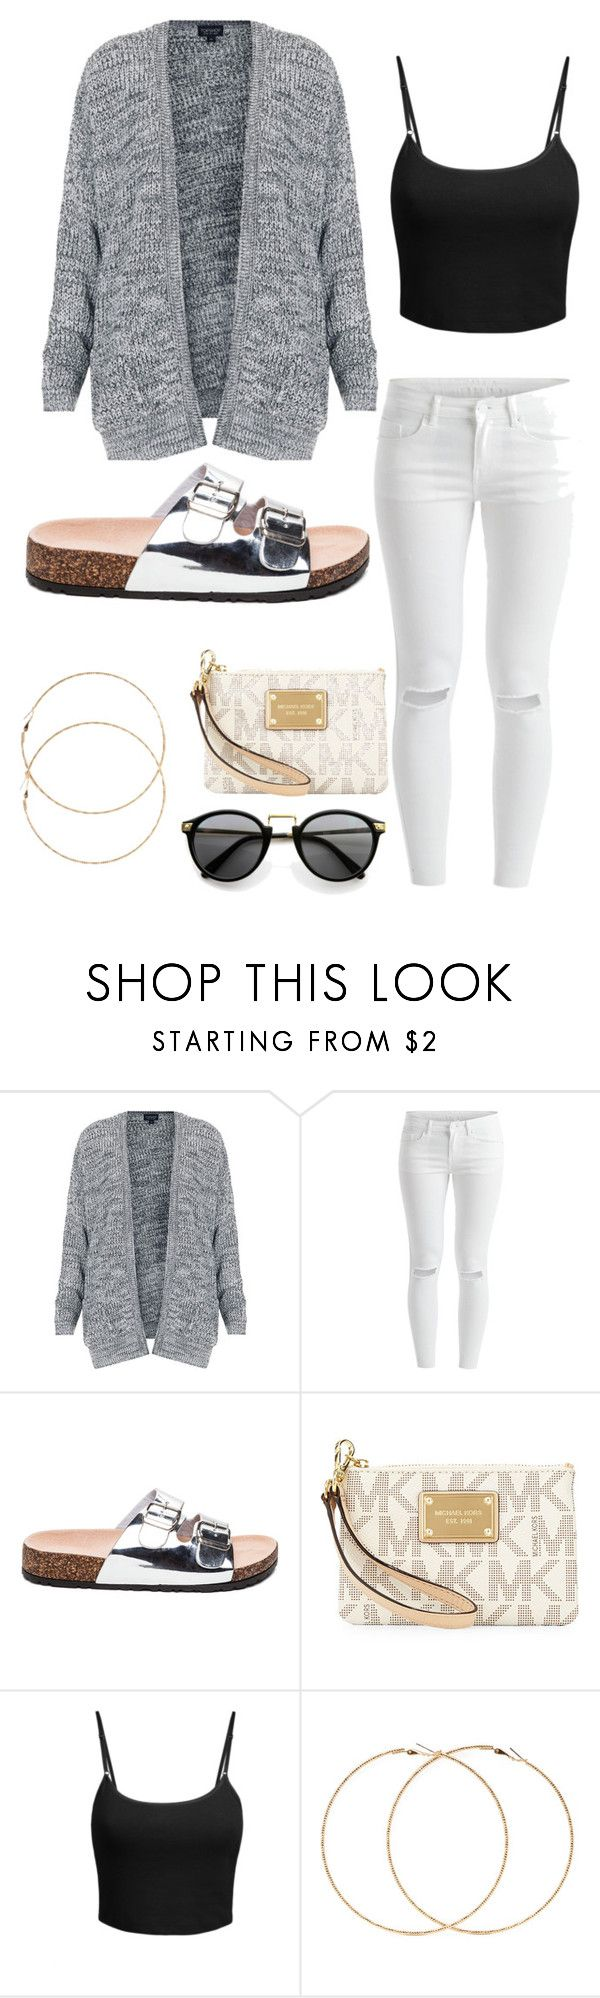 """""""Untitled #90"""" by camerondash86 on Polyvore featuring Topshop, VILA, MICHAEL Michael Kors, LE3NO, Forever 21, women's clothing, women, female, woman and misses"""